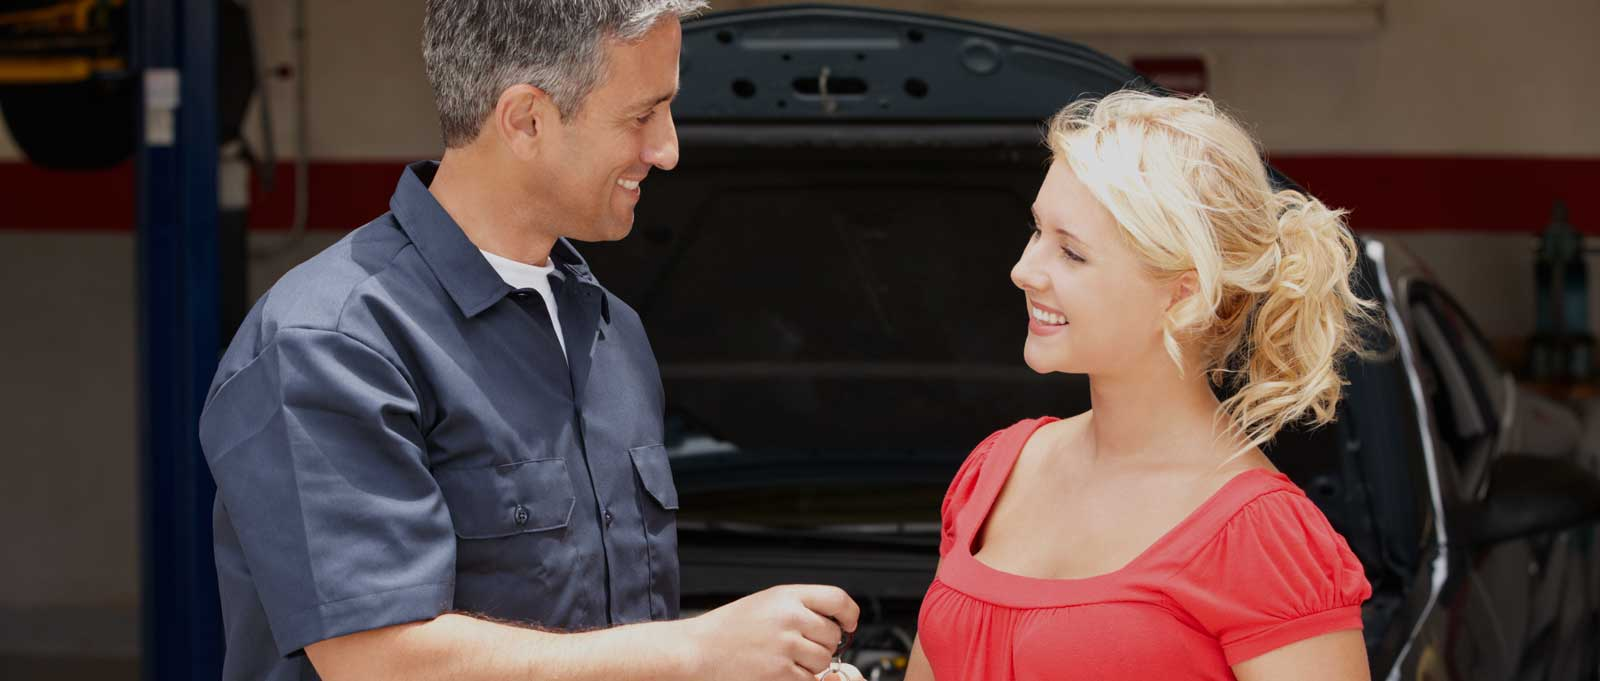 Auto Mechanic and Auto Repair Customer